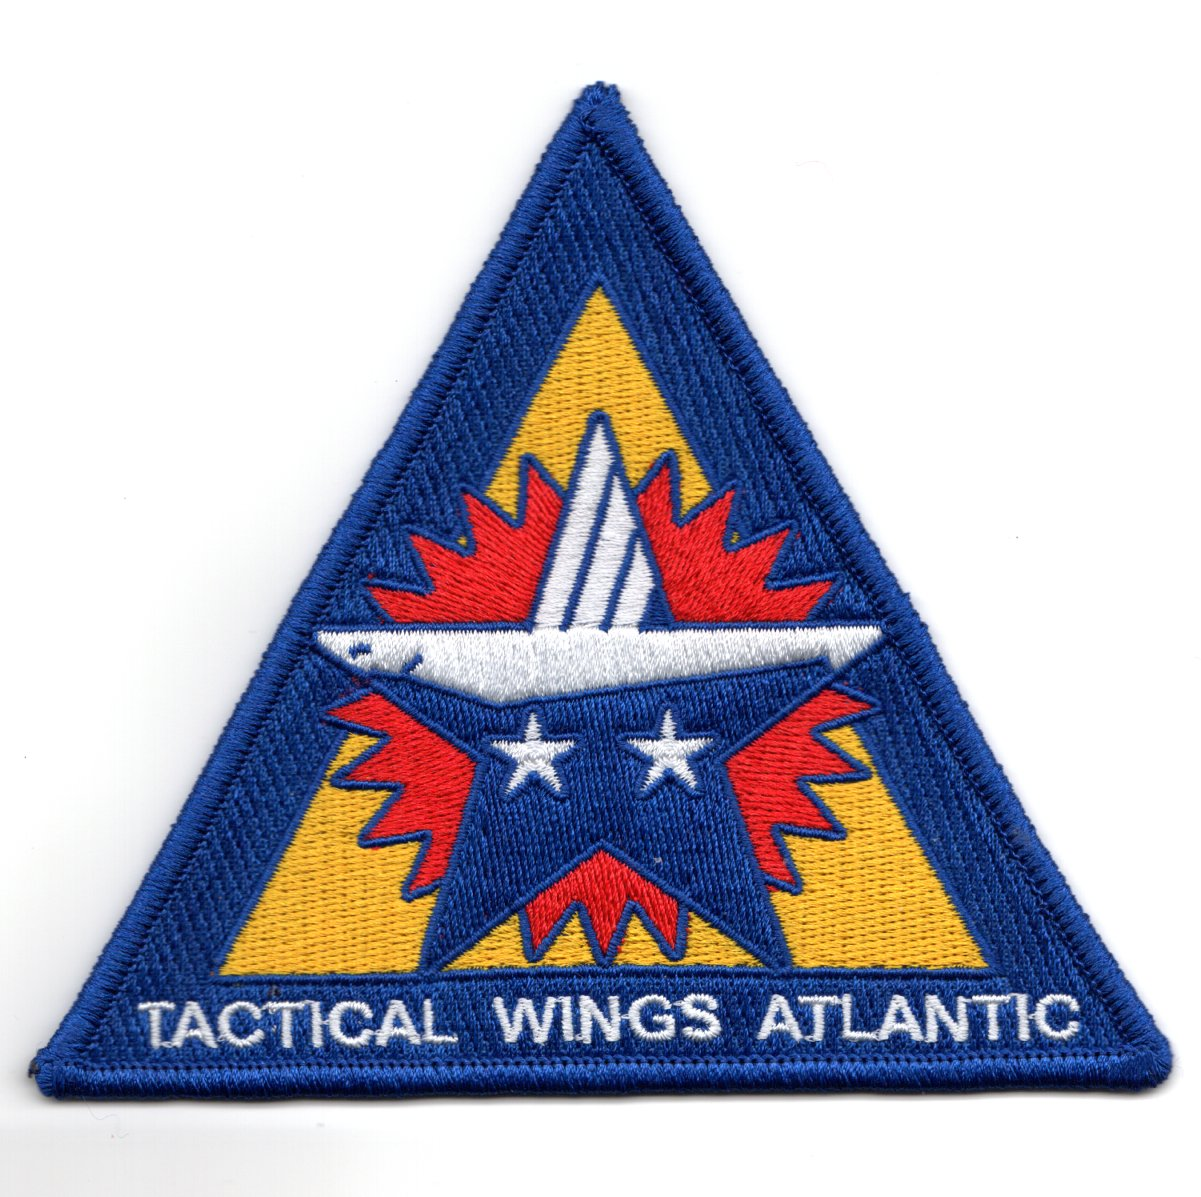 TOPGUN: TAC WINGS ATLANTIC Tri (Blue)